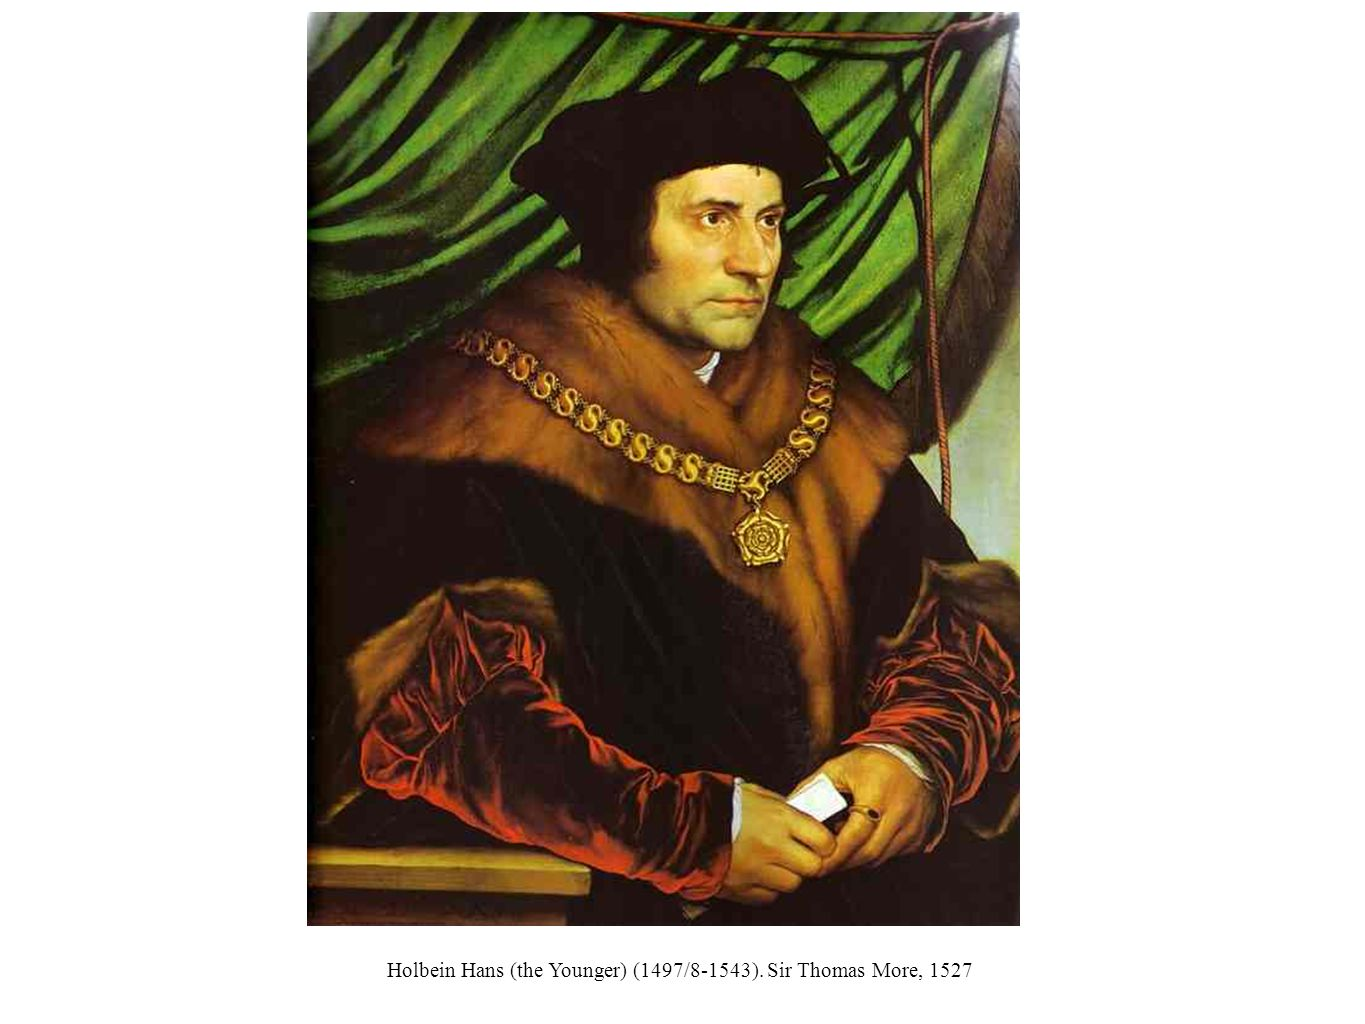 Holbein Hans (the Younger) (1497/8-1543). Sir Thomas More, 1527